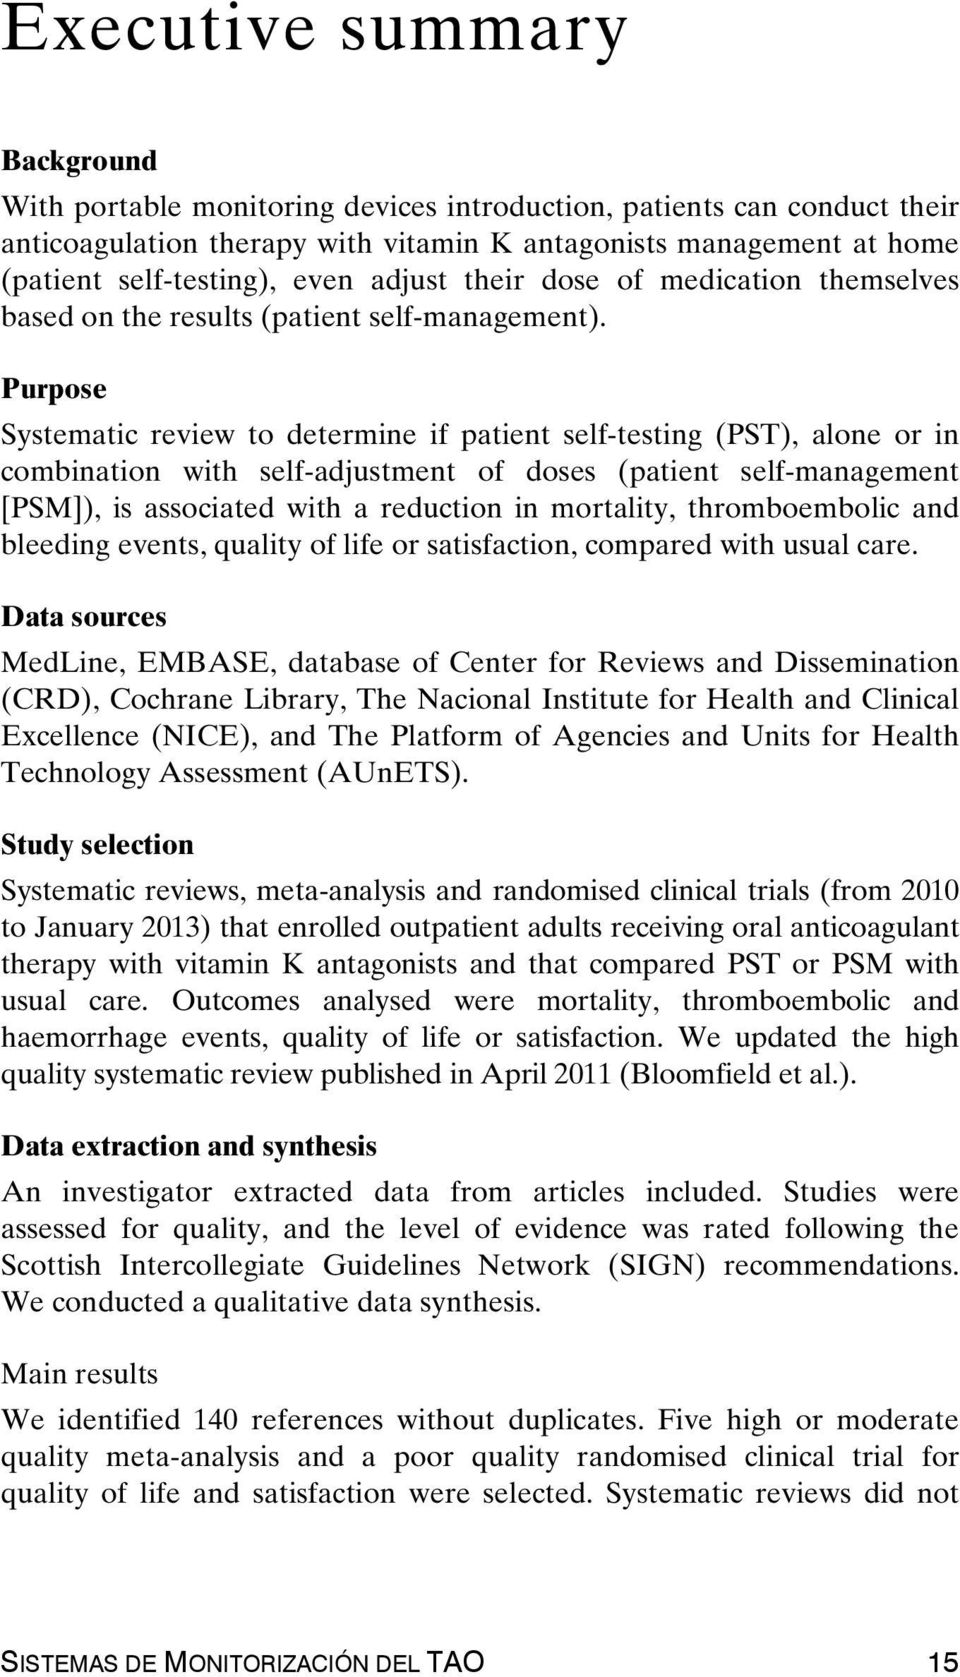 Purpose Systematic review to determine if patient self-testing (PST), alone or in combination with self-adjustment of doses (patient self-management [PSM]), is associated with a reduction in